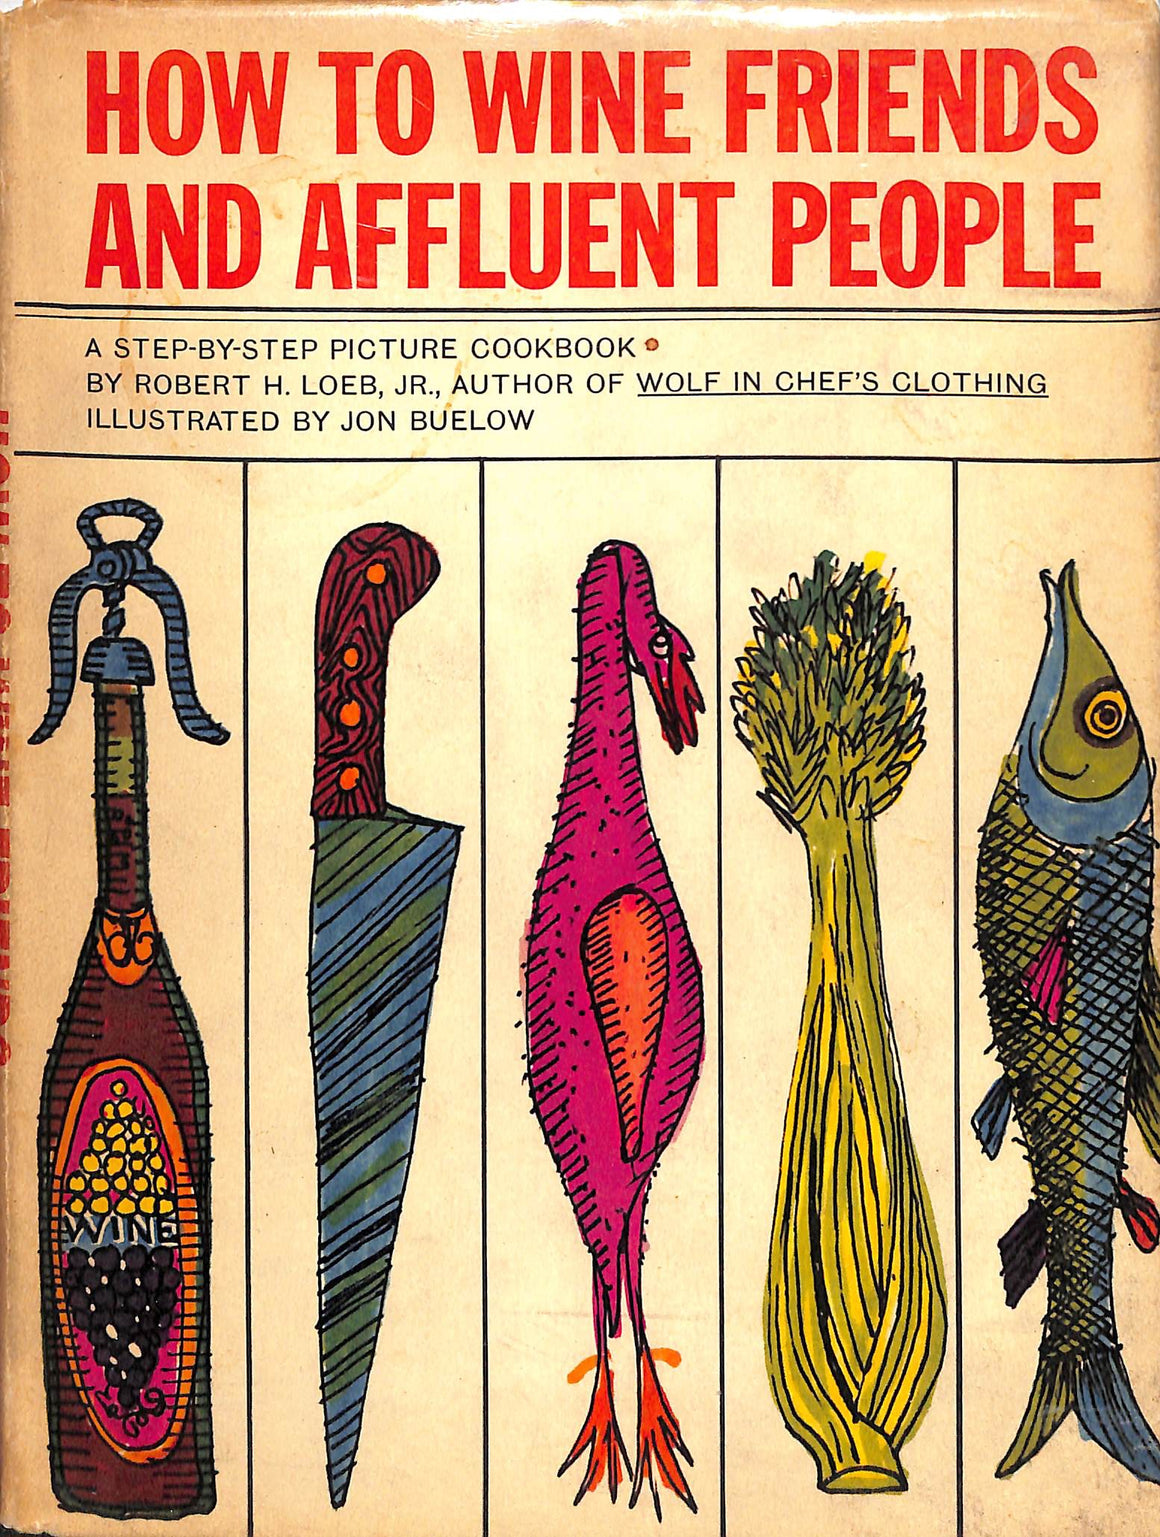 How to Wine Friends and Affluent People by Robert H. Loeb, Jr